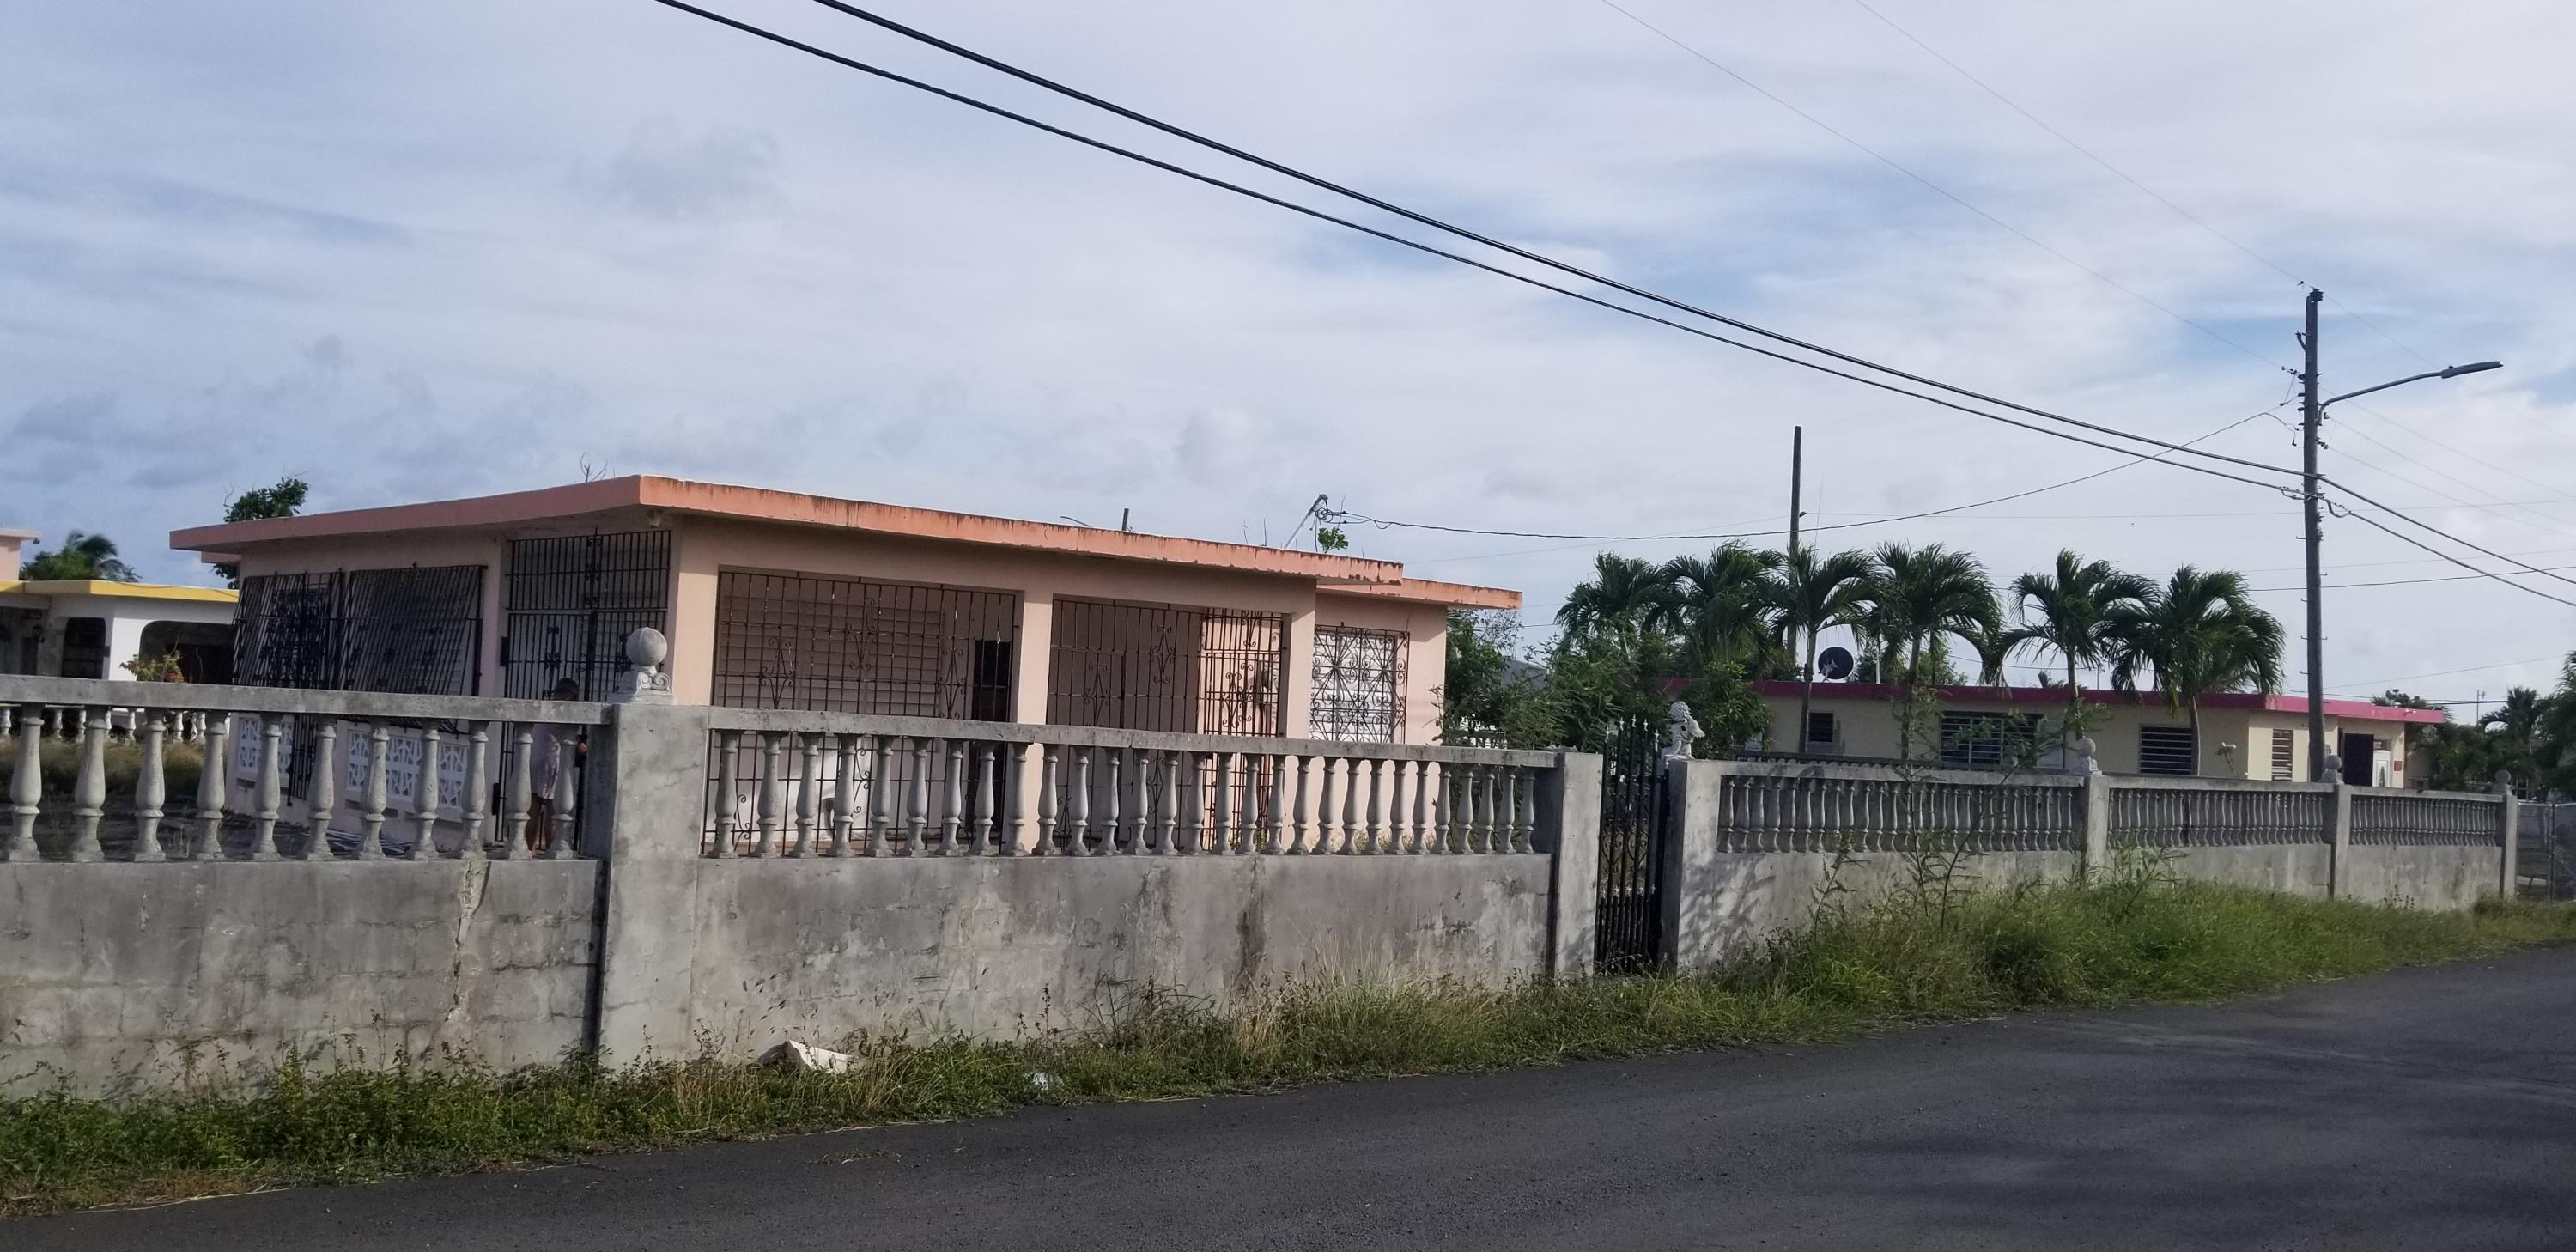 Single Family Home for Sale at 122-Y Whim (Two Williams) WE 122-Y Whim (Two Williams) WE St Croix, Virgin Islands 00840 United States Virgin Islands